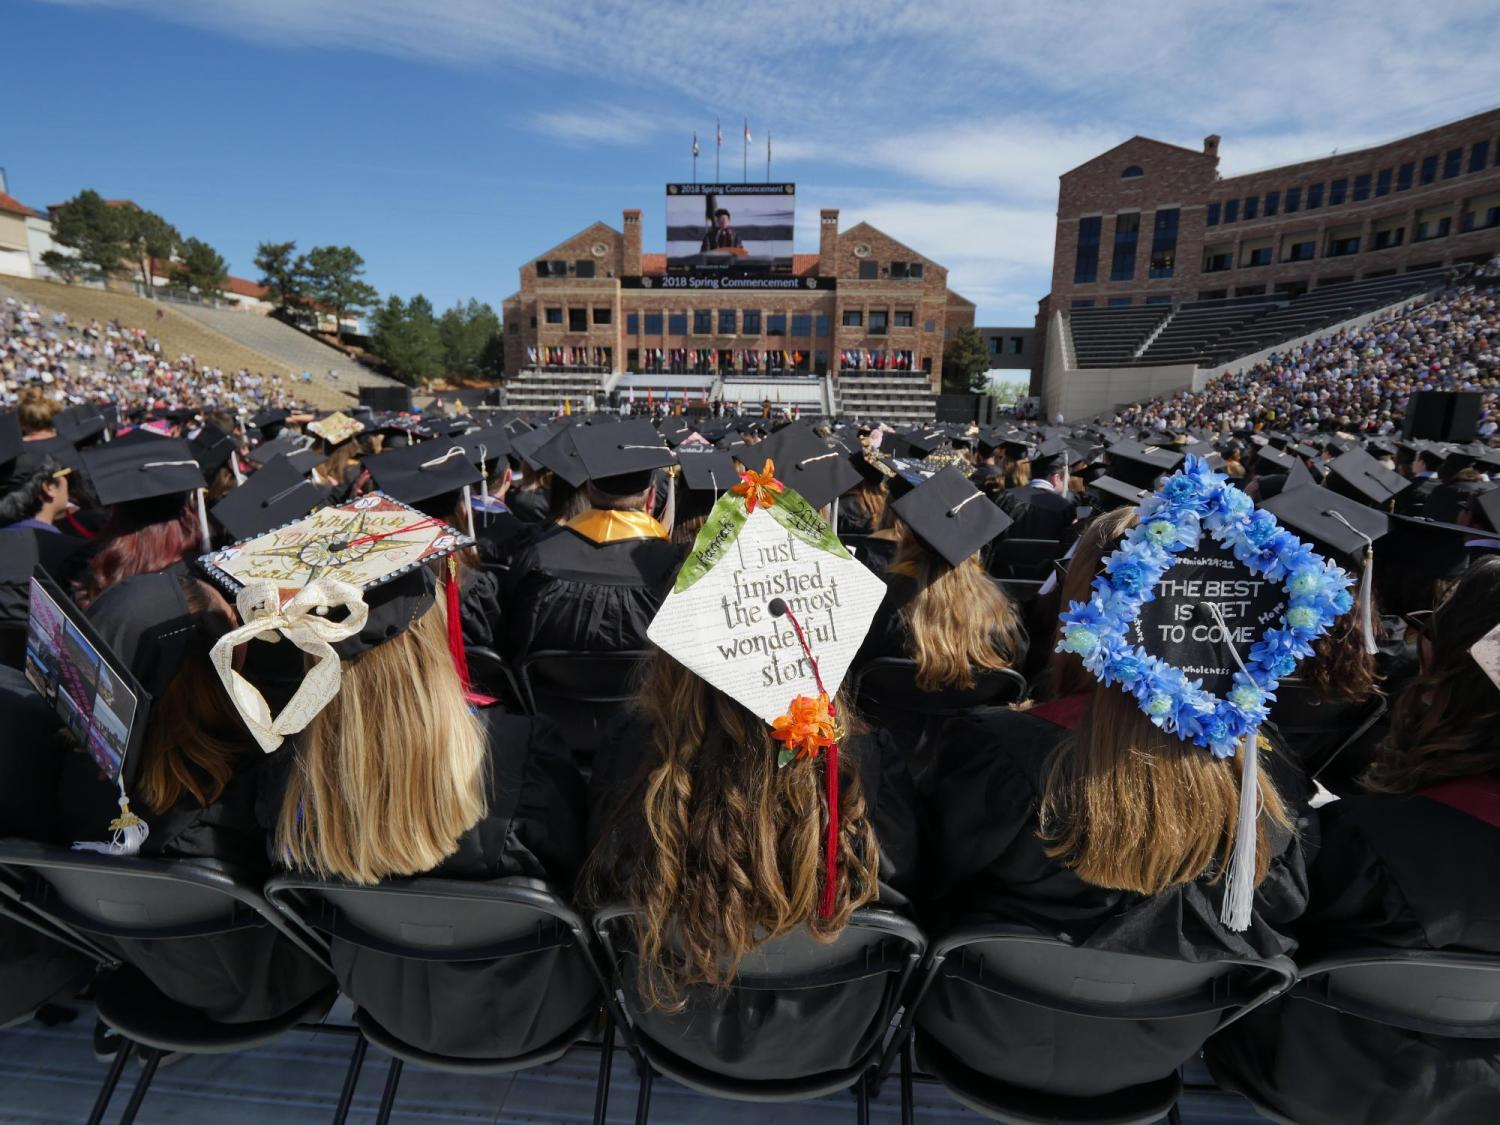 Scenes from CU Boulder's 2018 main commencement ceremony at Folsom Field. Photo by Glenn Asakawa.